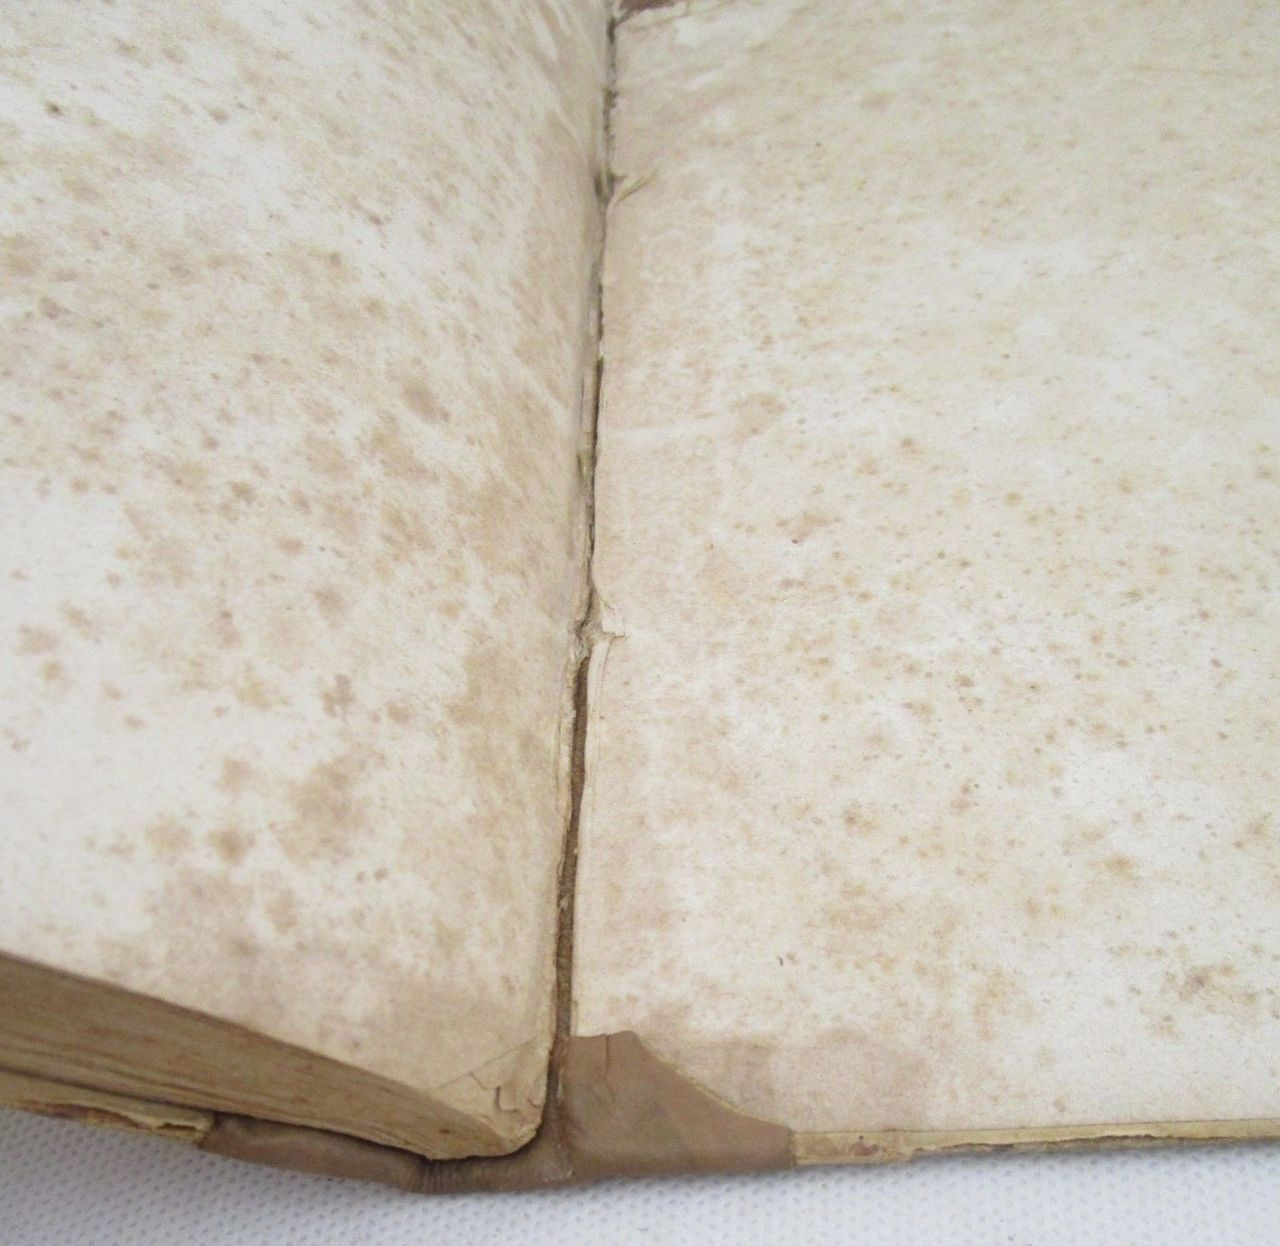 A TREATISE OF DOMESTIC MEDICINE & DOMESTIC COOKERY, by Thomas Cooper - 1824 [recased 1st Ed]